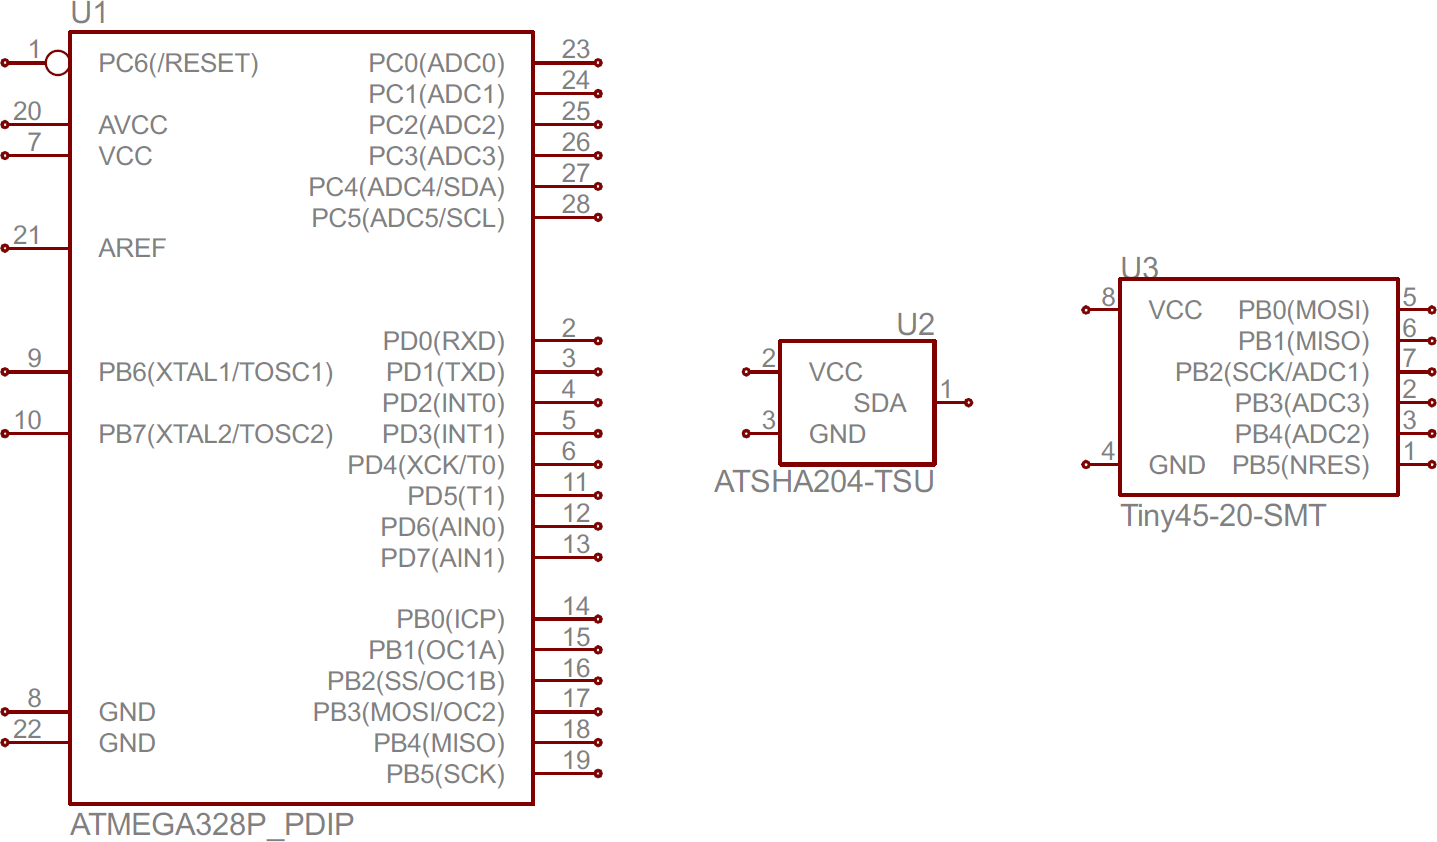 How to read a schematic learnsparkfun atmega328 atsha204 and attiny45 ic symbols schematic biocorpaavc Gallery